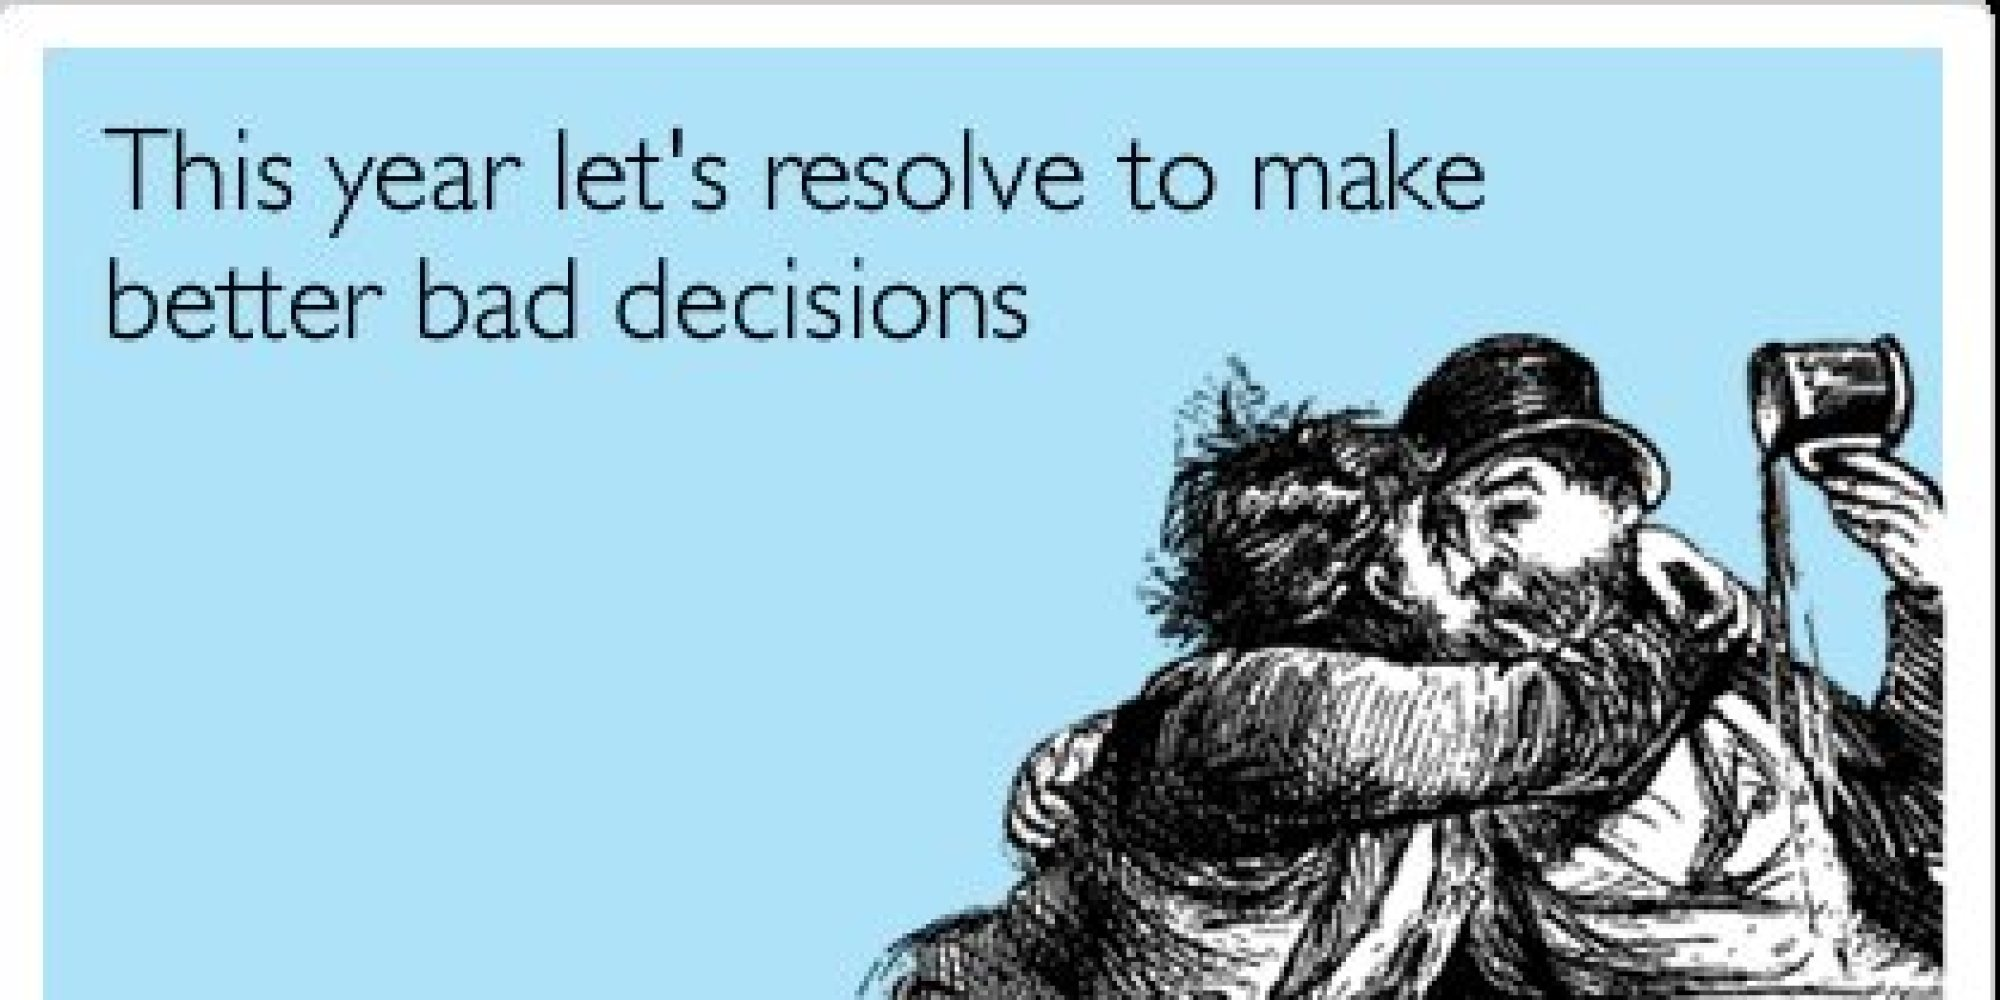 17 New Yearu0027s Eve Someecards That Will Start Your 2014 With A Laugh |  HuffPost Amazing Design